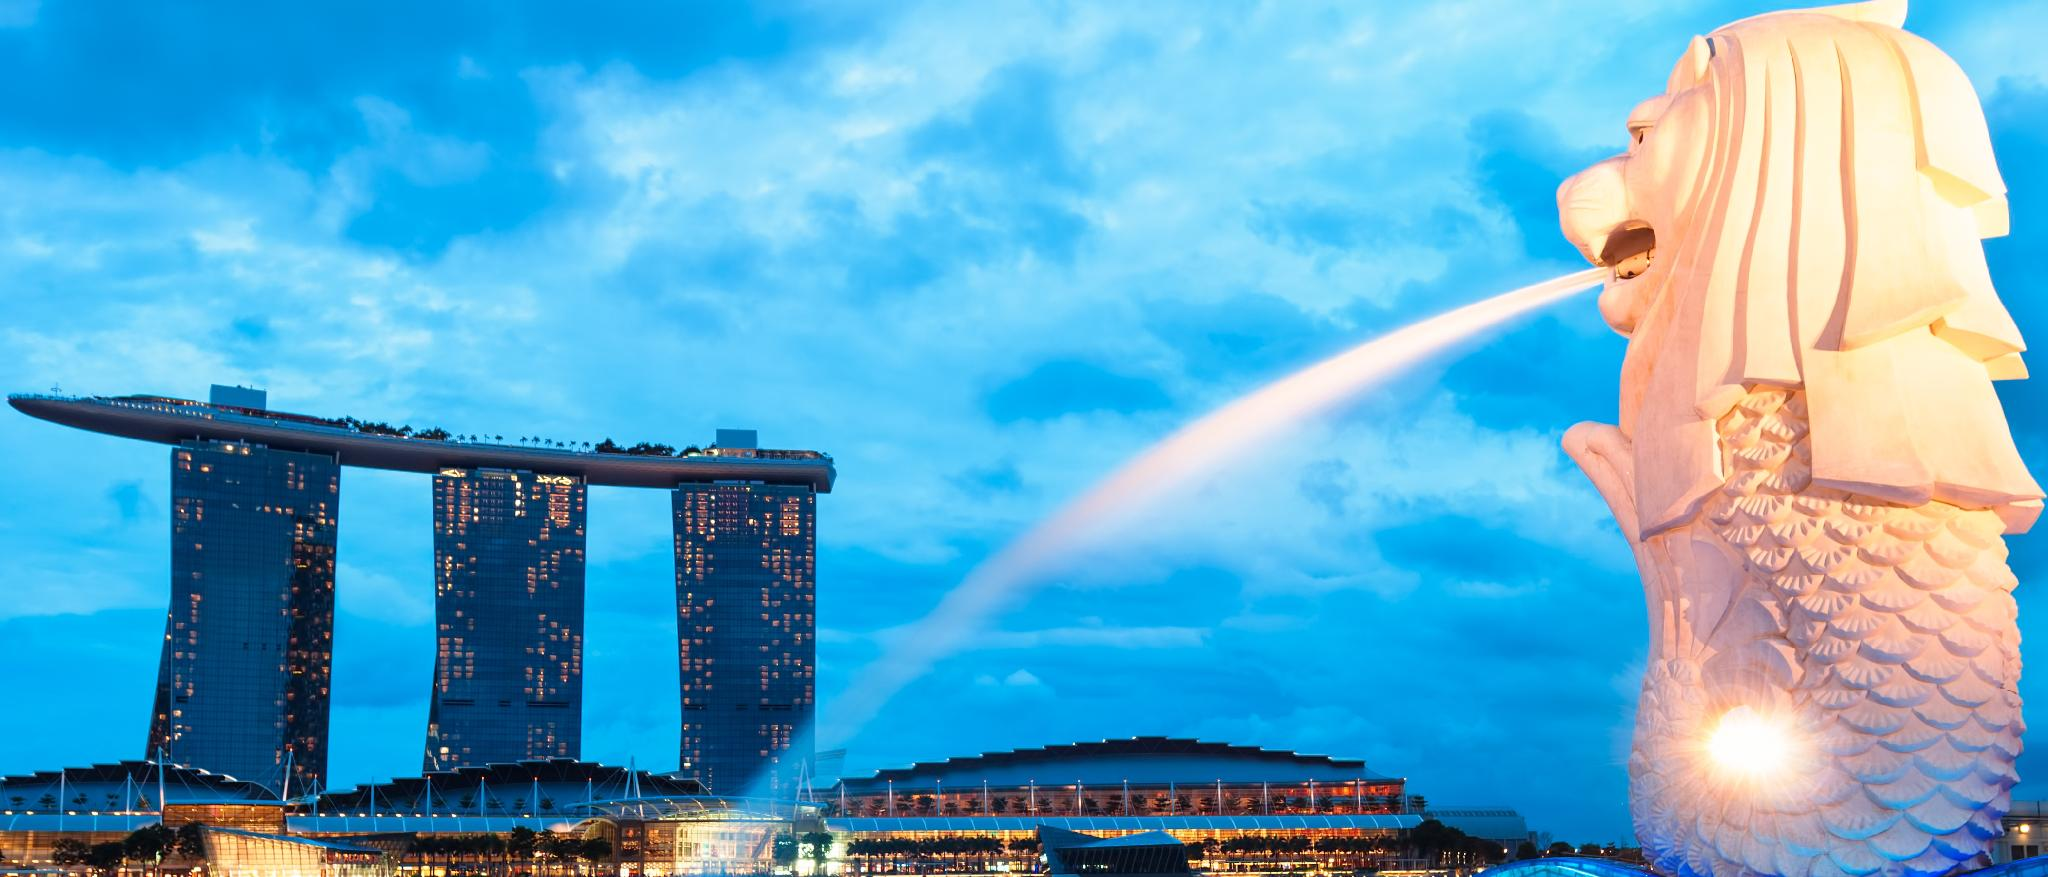 Singapore Hotels, Singapore: Great savings and real reviews